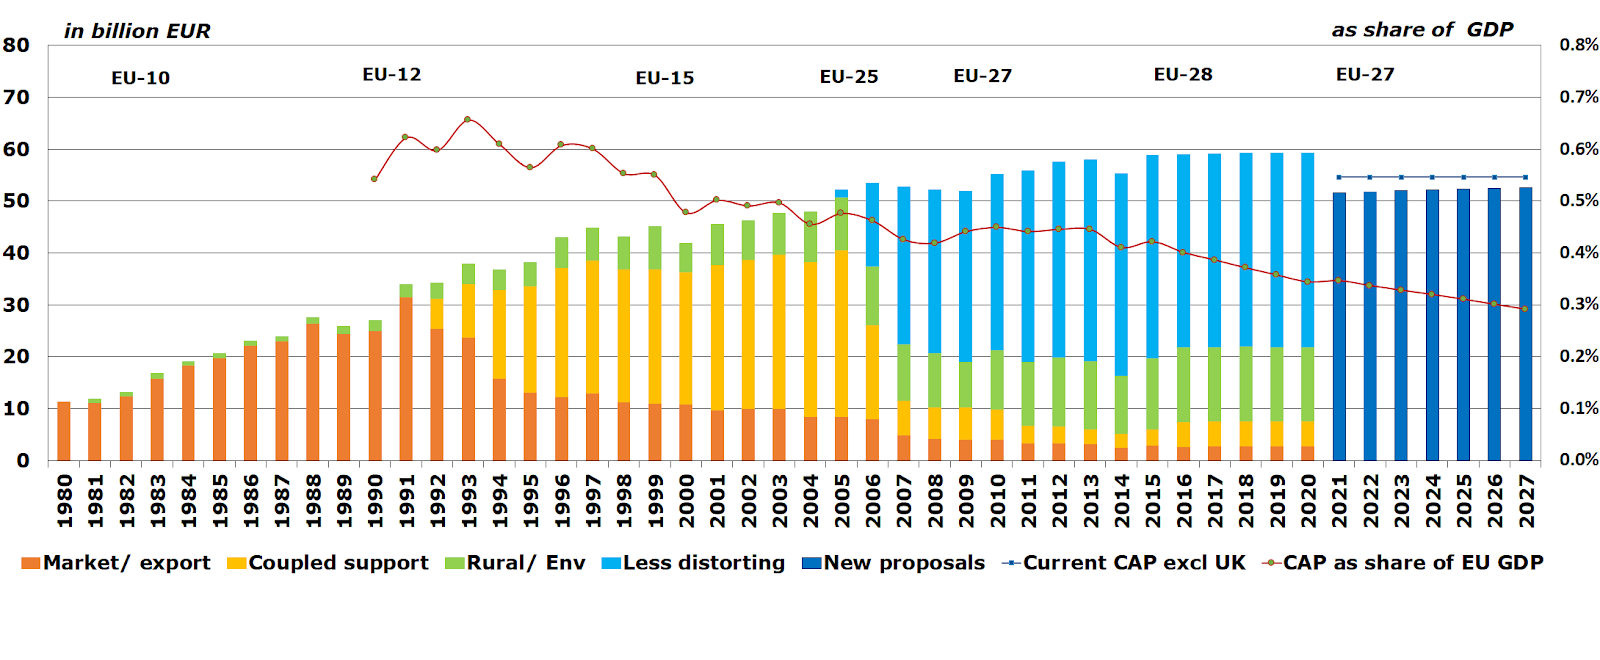 changes in EU ag budget over time